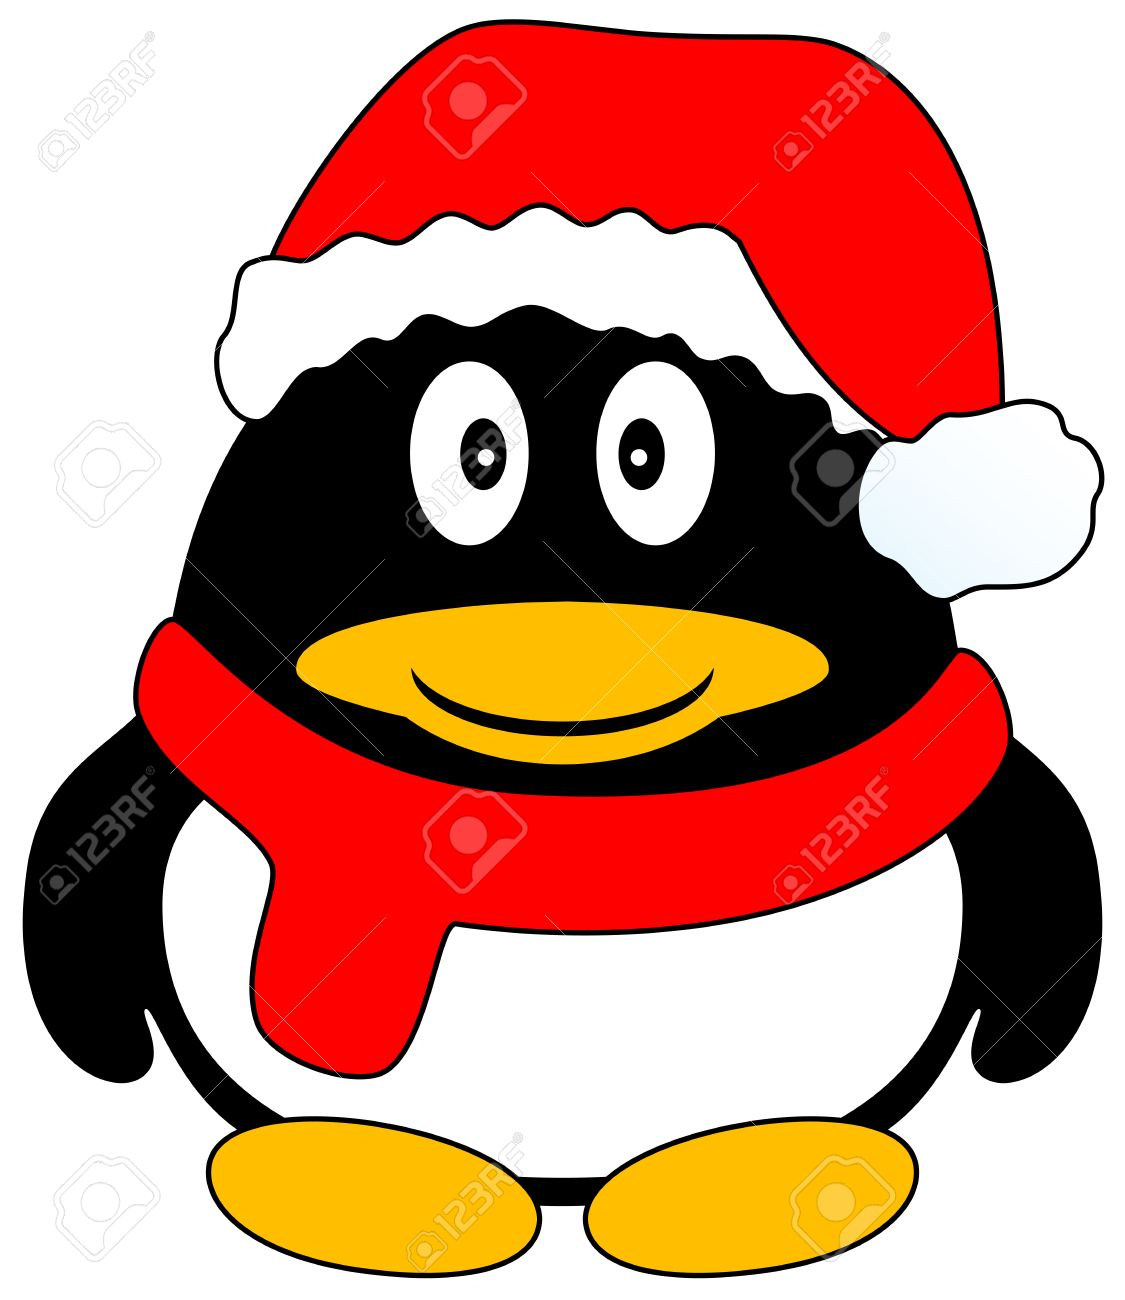 Cute Happy Cartoon Penguin With Red Cap And Scarf Isolated Vector Illustration